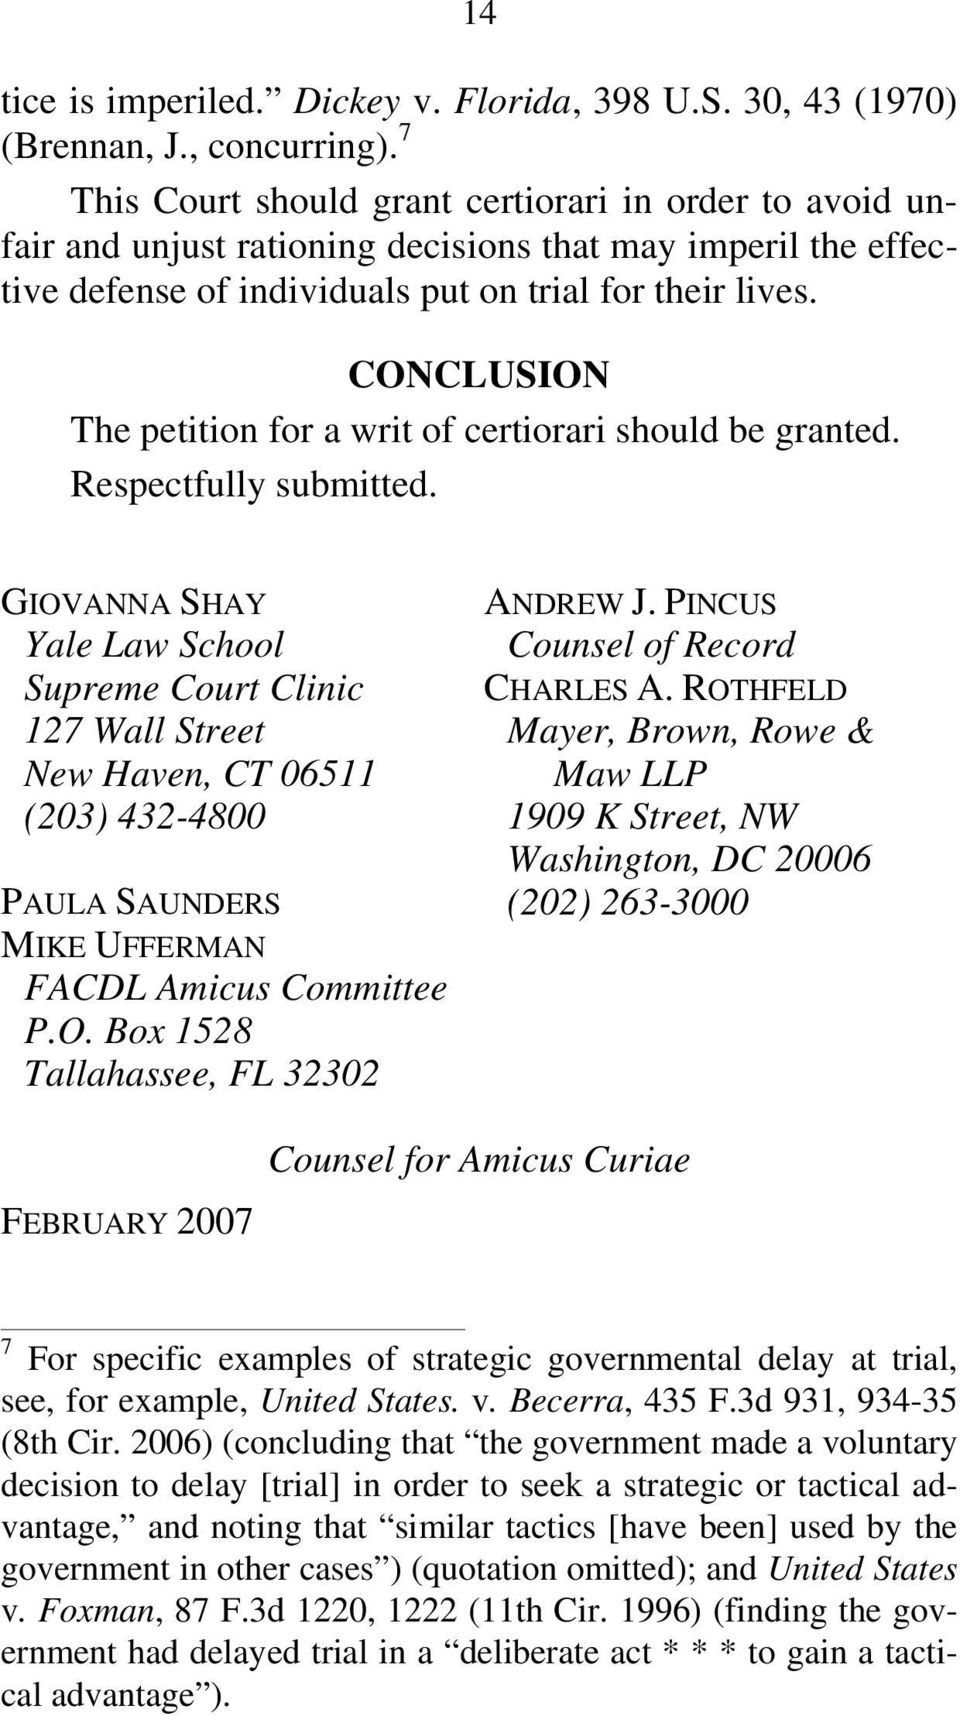 CONCLUSION The petition for a writ of certiorari should be granted. Respectfully submitted.